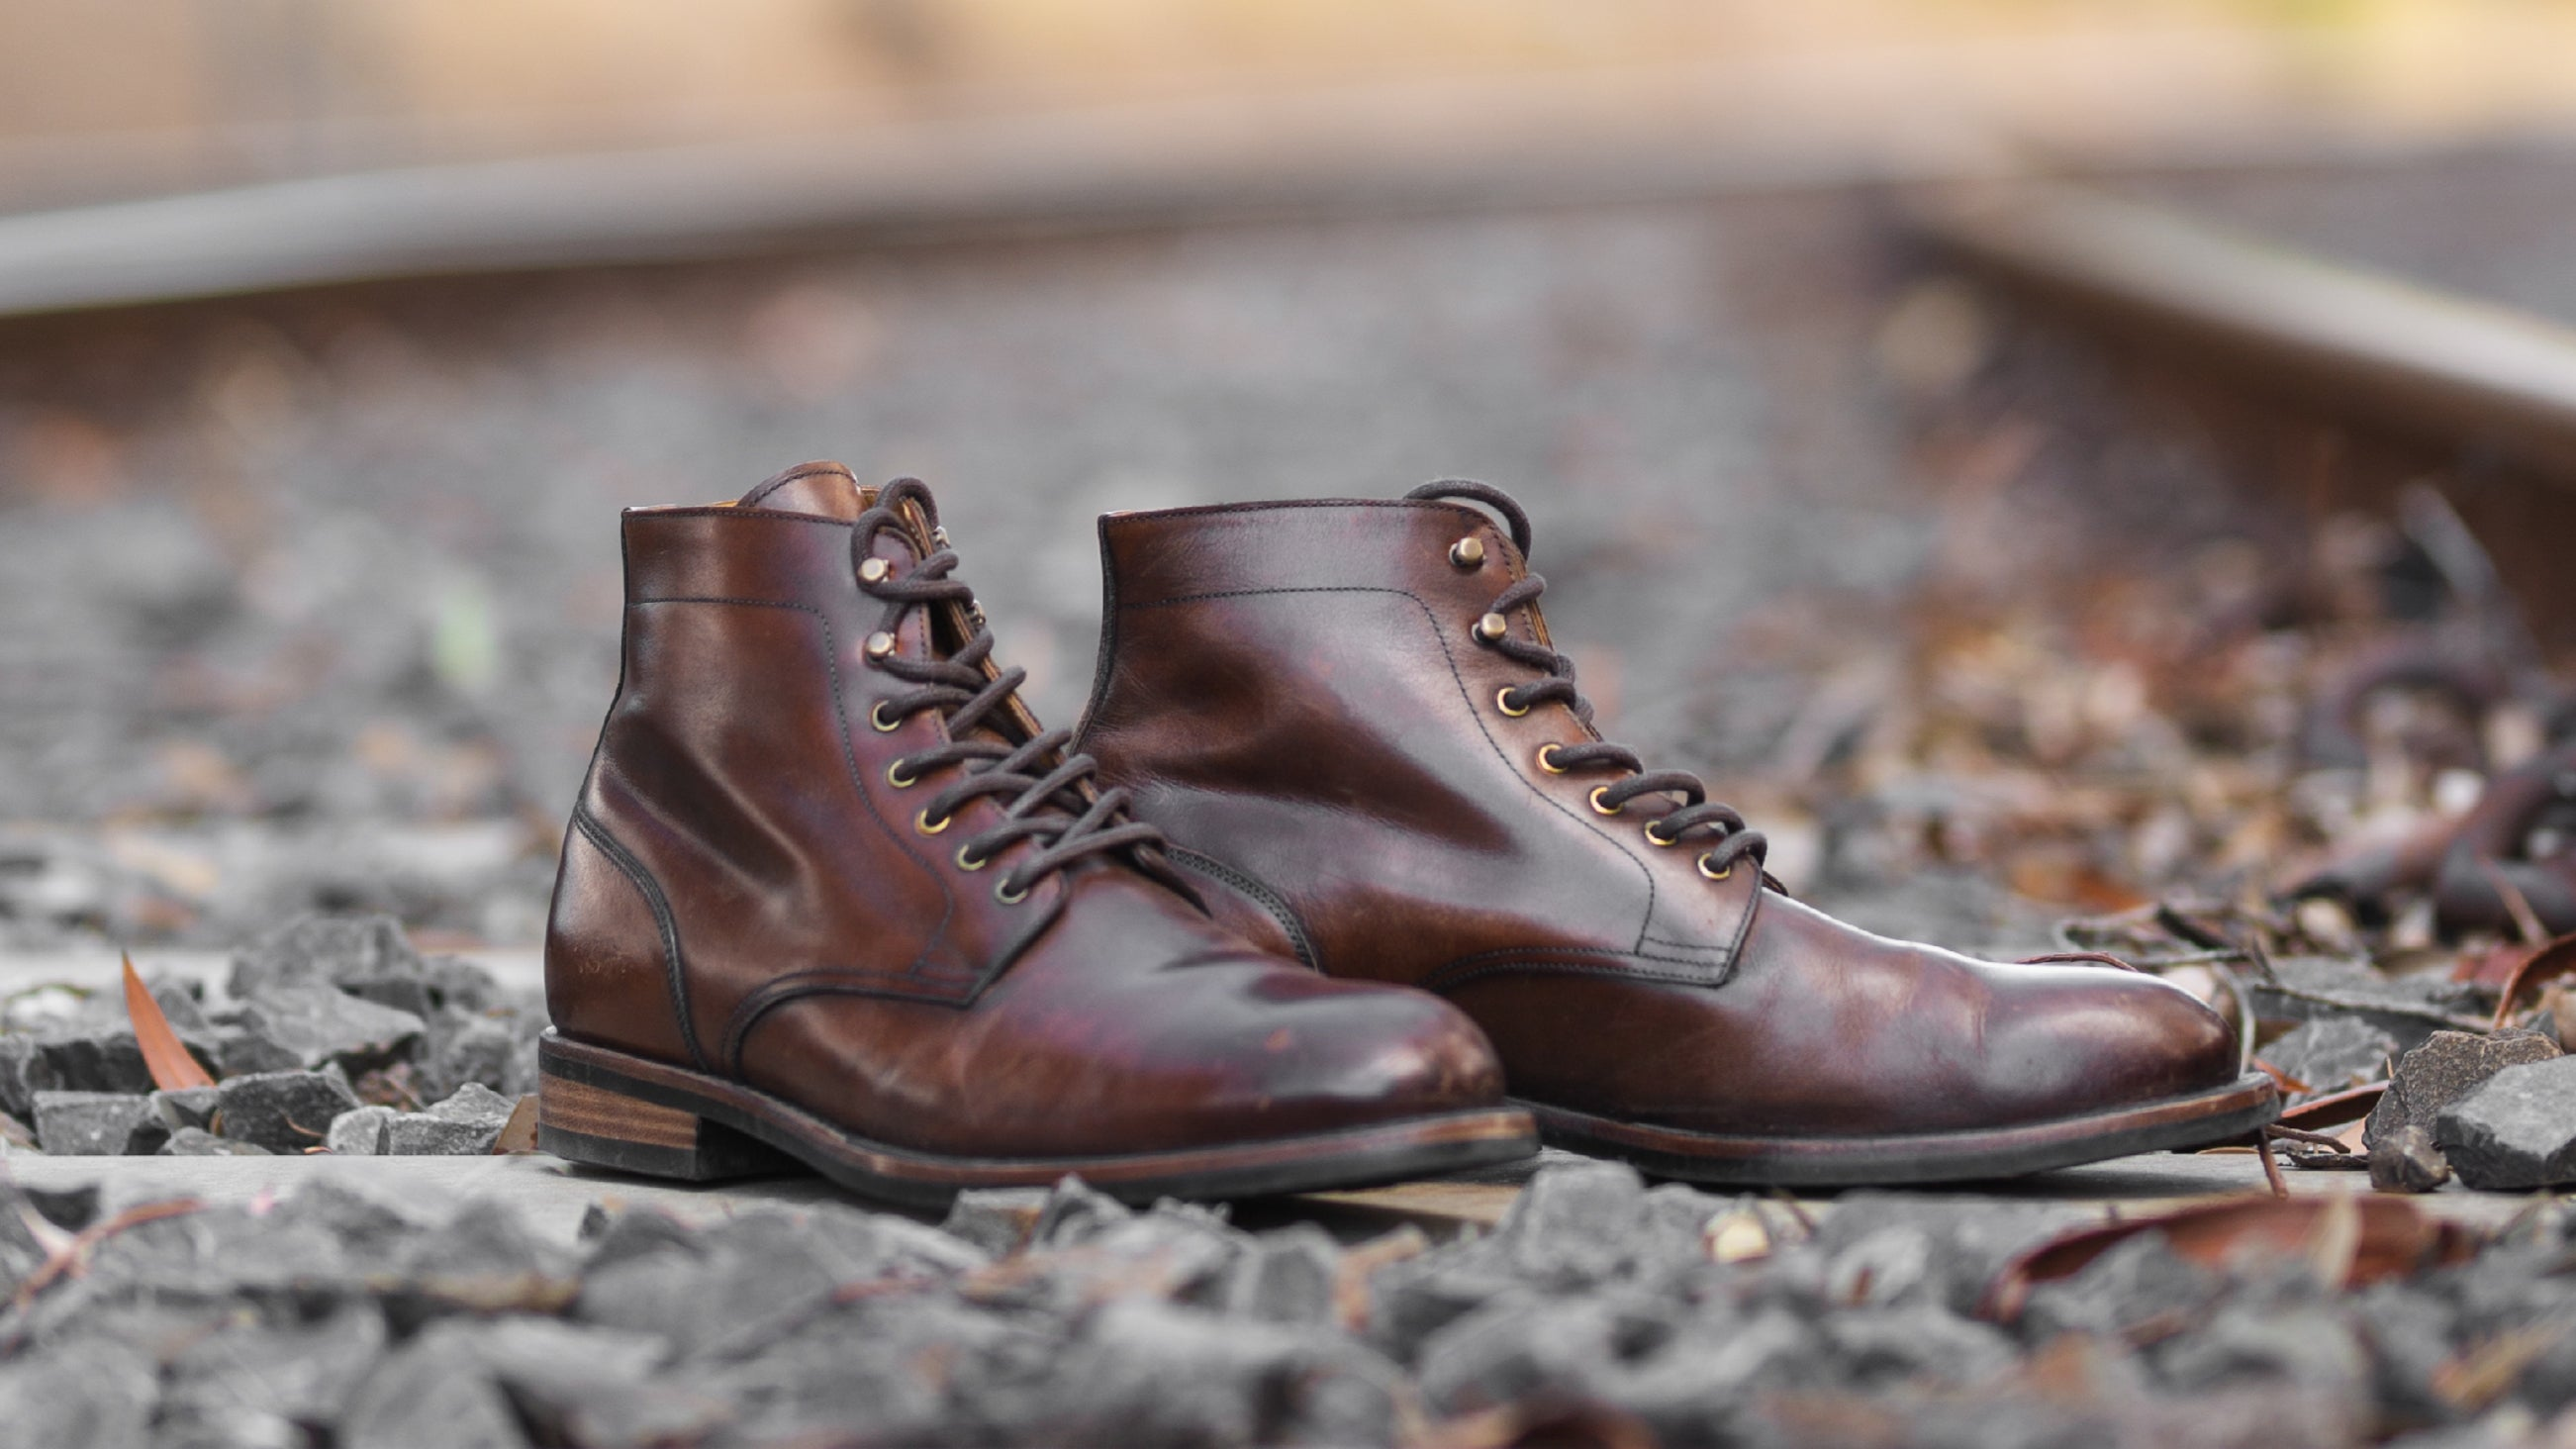 A pair of well worn Turon service boots, looking better with age